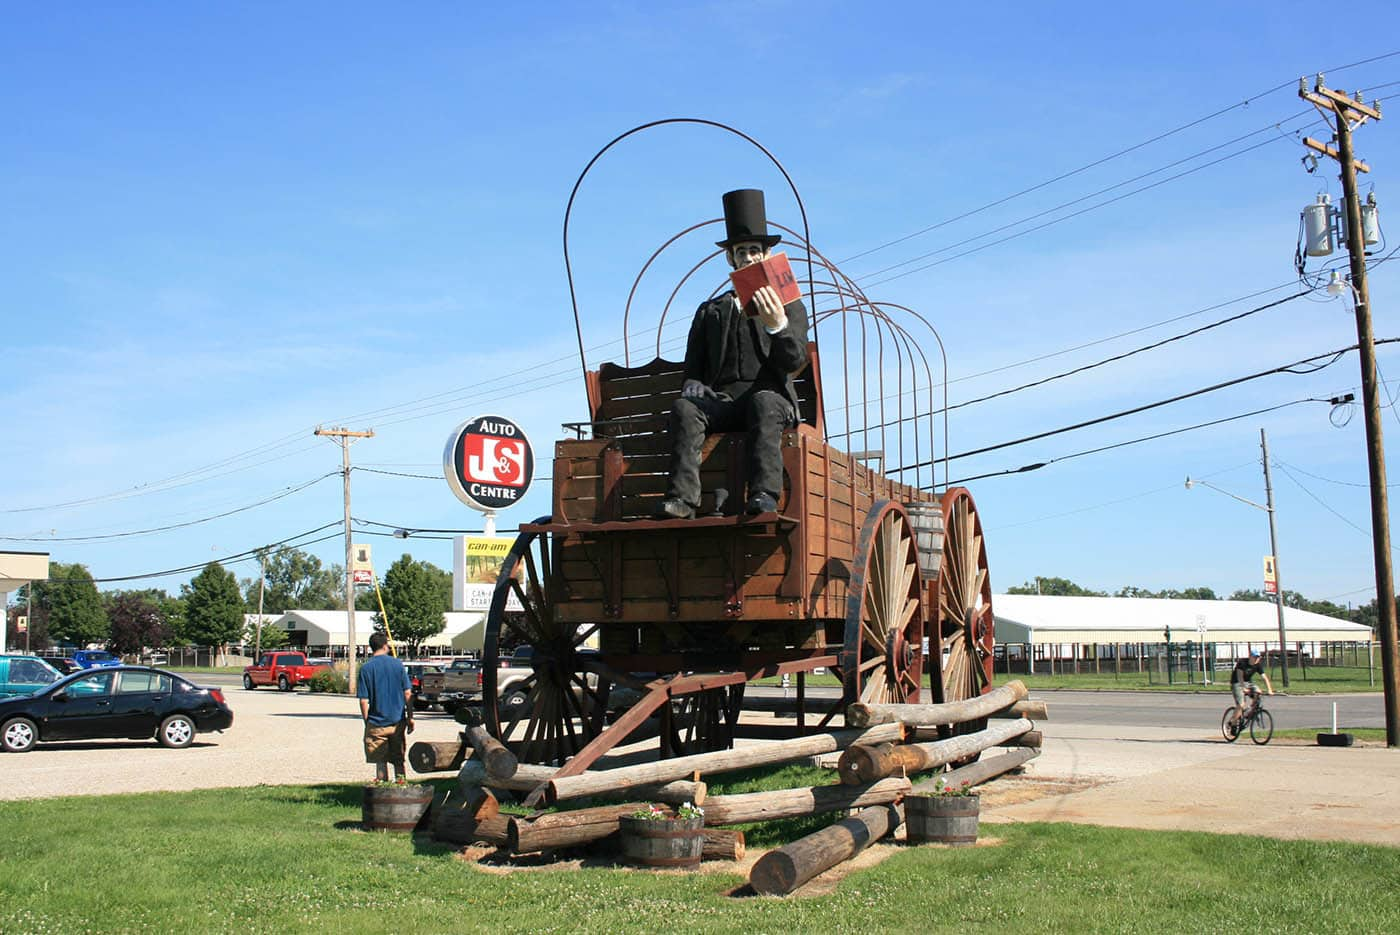 ILLINOIS ROAD TRIP AND ROADSIDE ATTRACTIONS: GIANT ABRAHAM LINCOLN ON COVERED WAGON IN LINCON